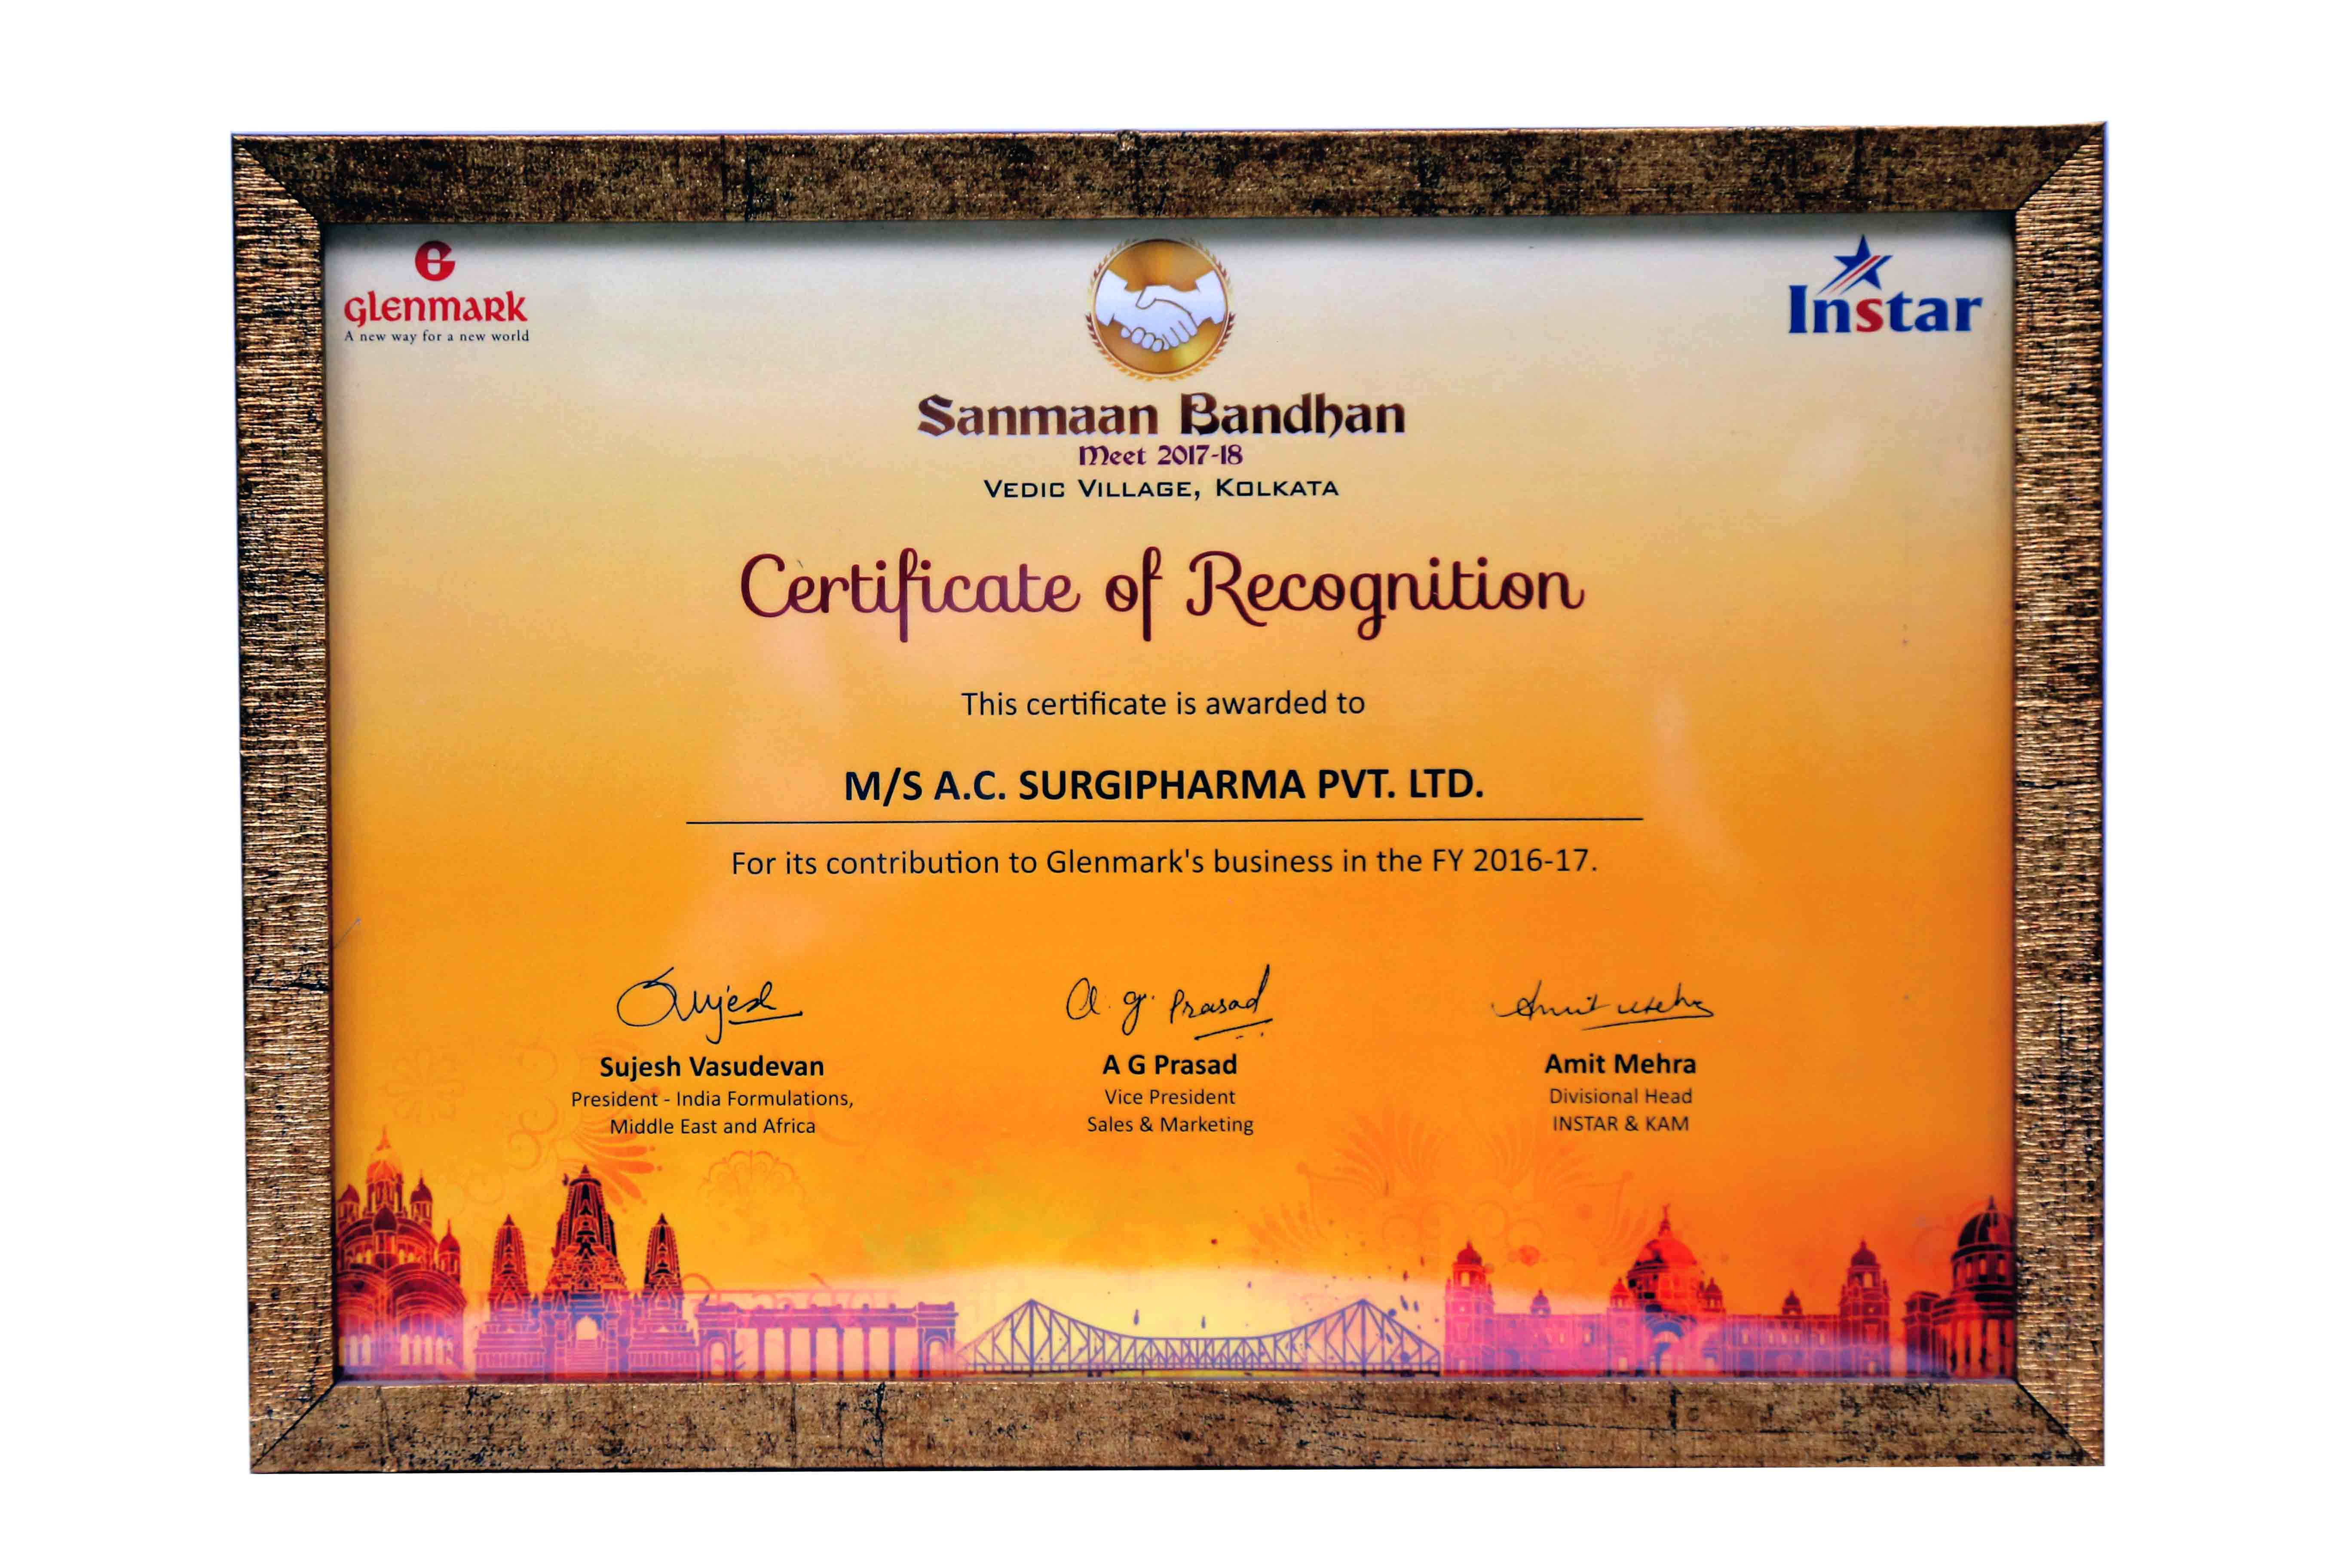 Certificate of Recognition (Sanmaan Bandhan) By Glenmark